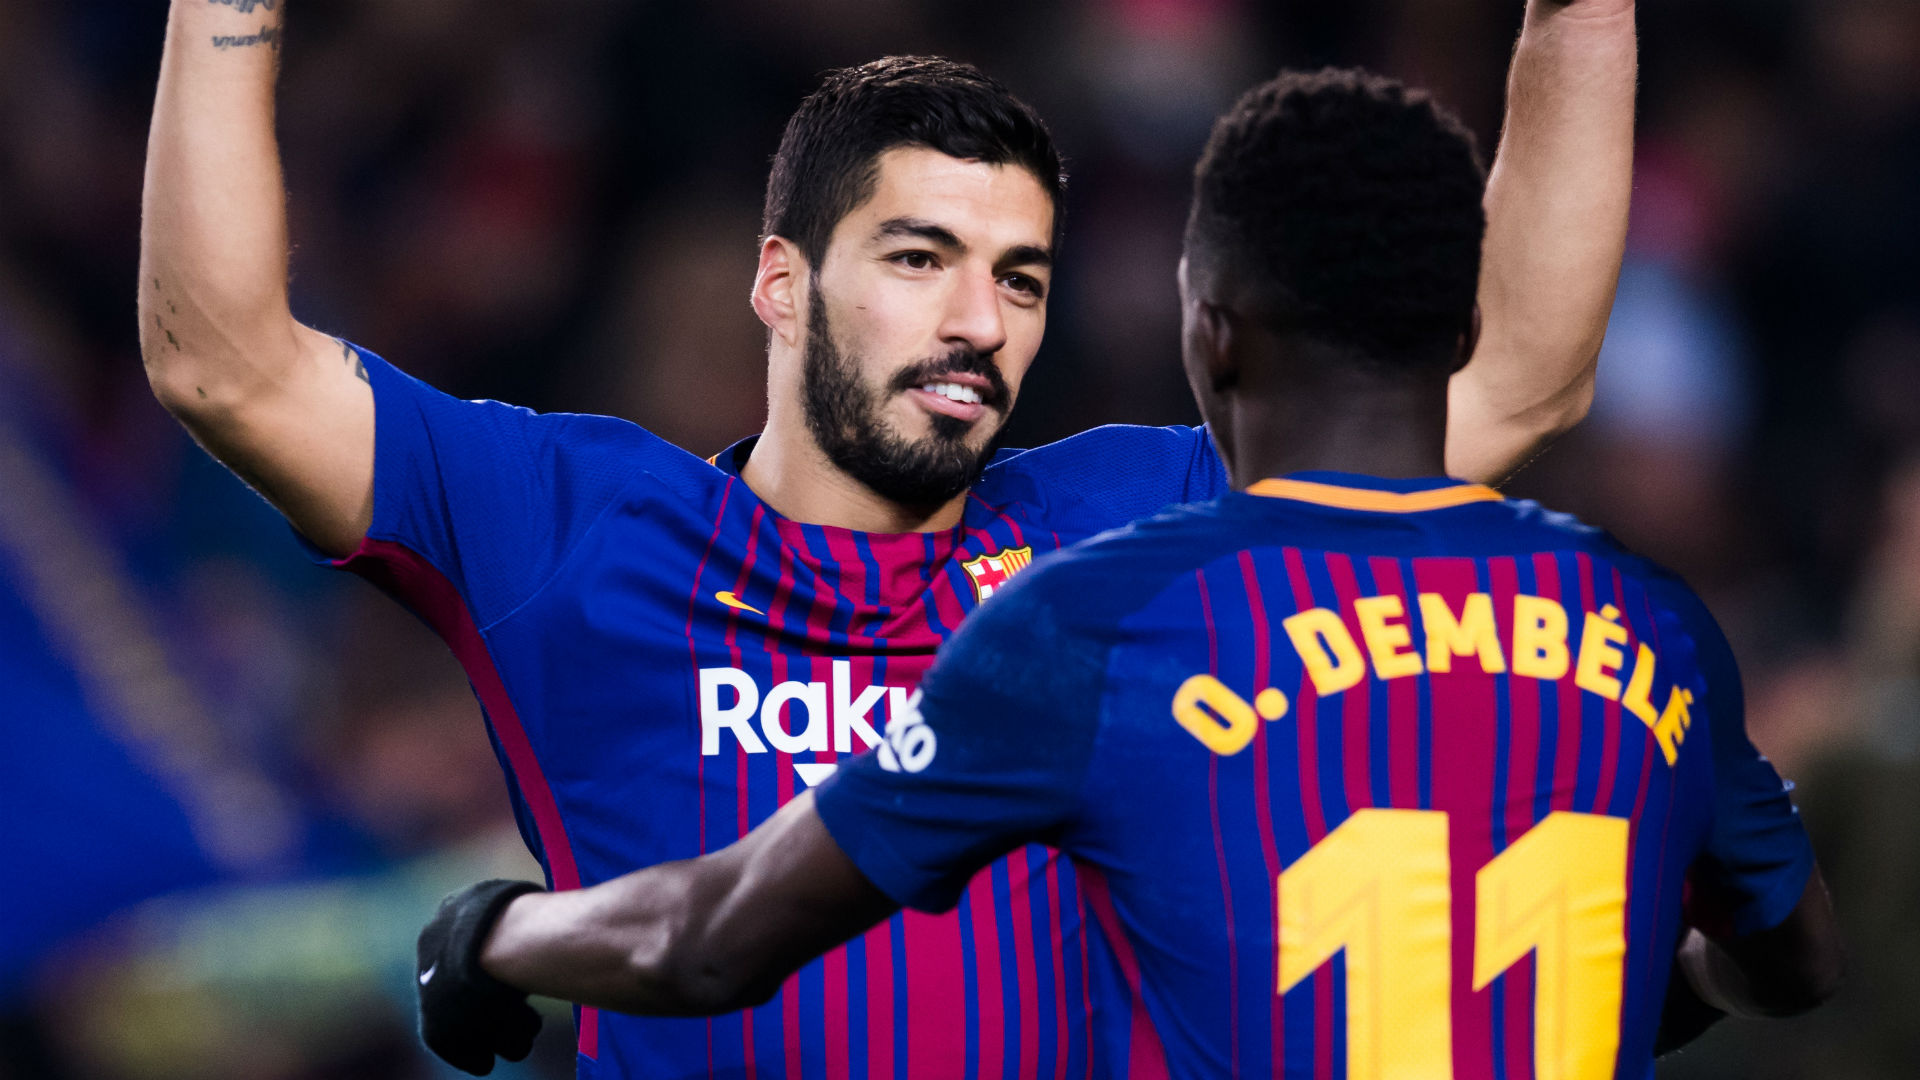 Dembele must focus and be more responsible - Suarez